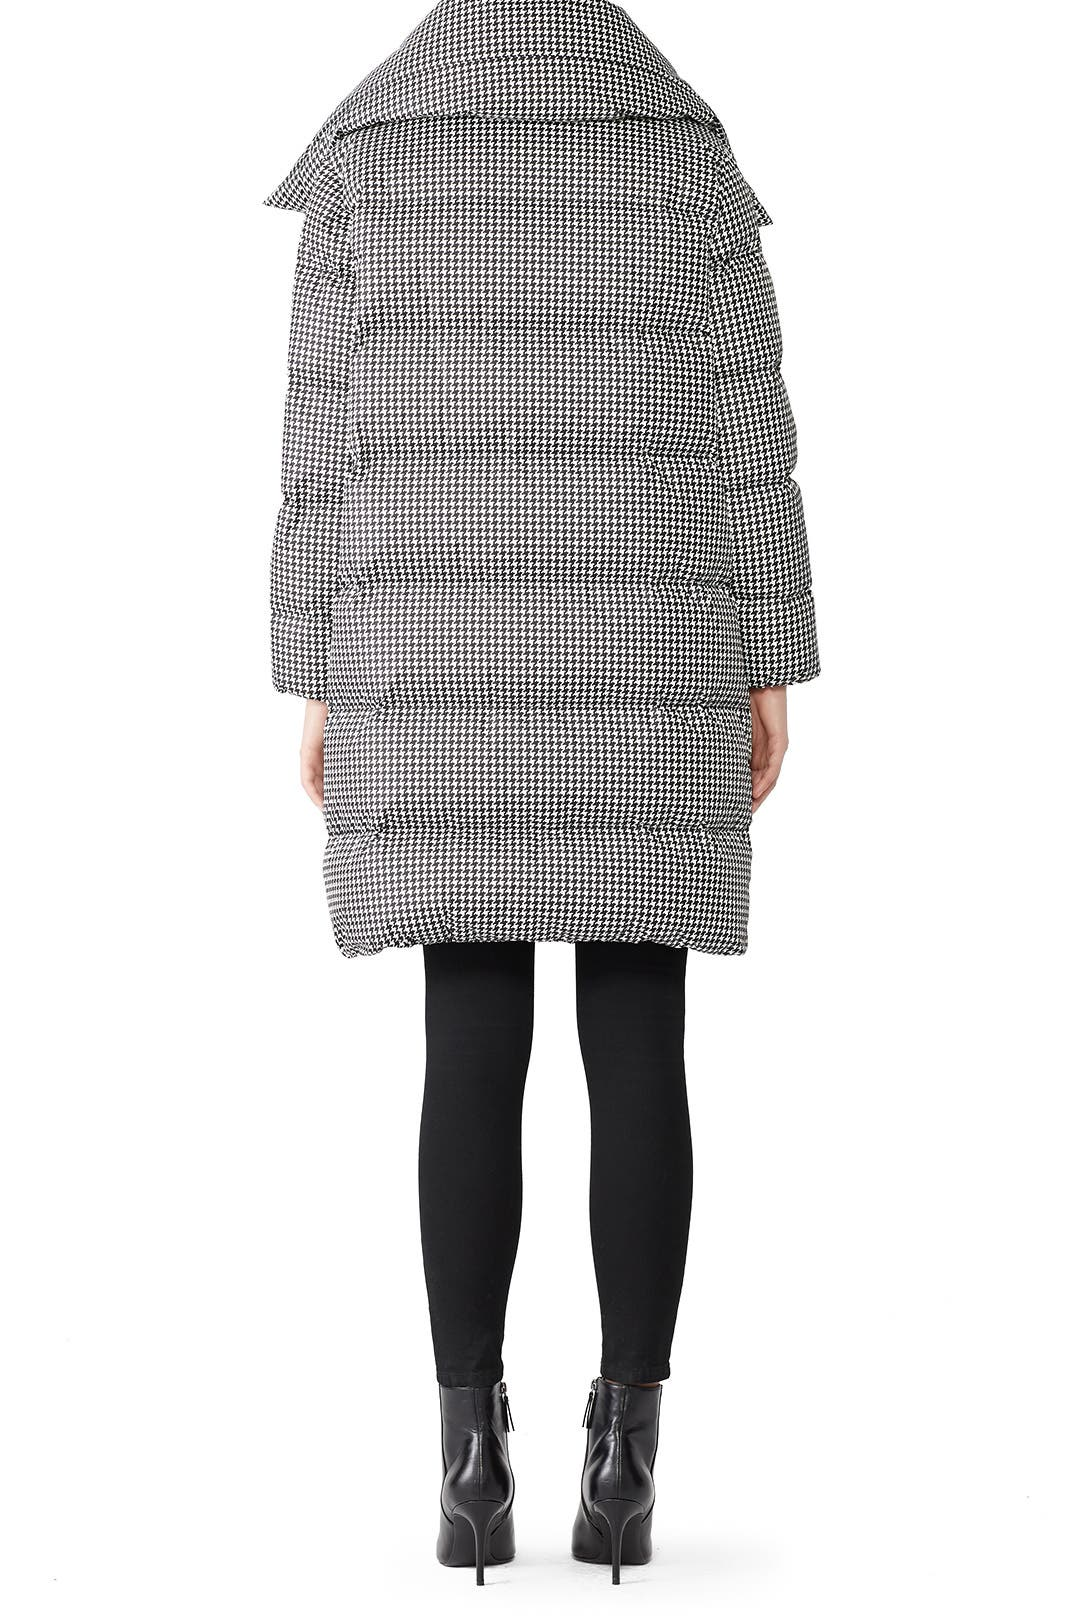 549cb4e219b Houndstooth Big Puffa Jacket by Bacon for $170 | Rent the Runway